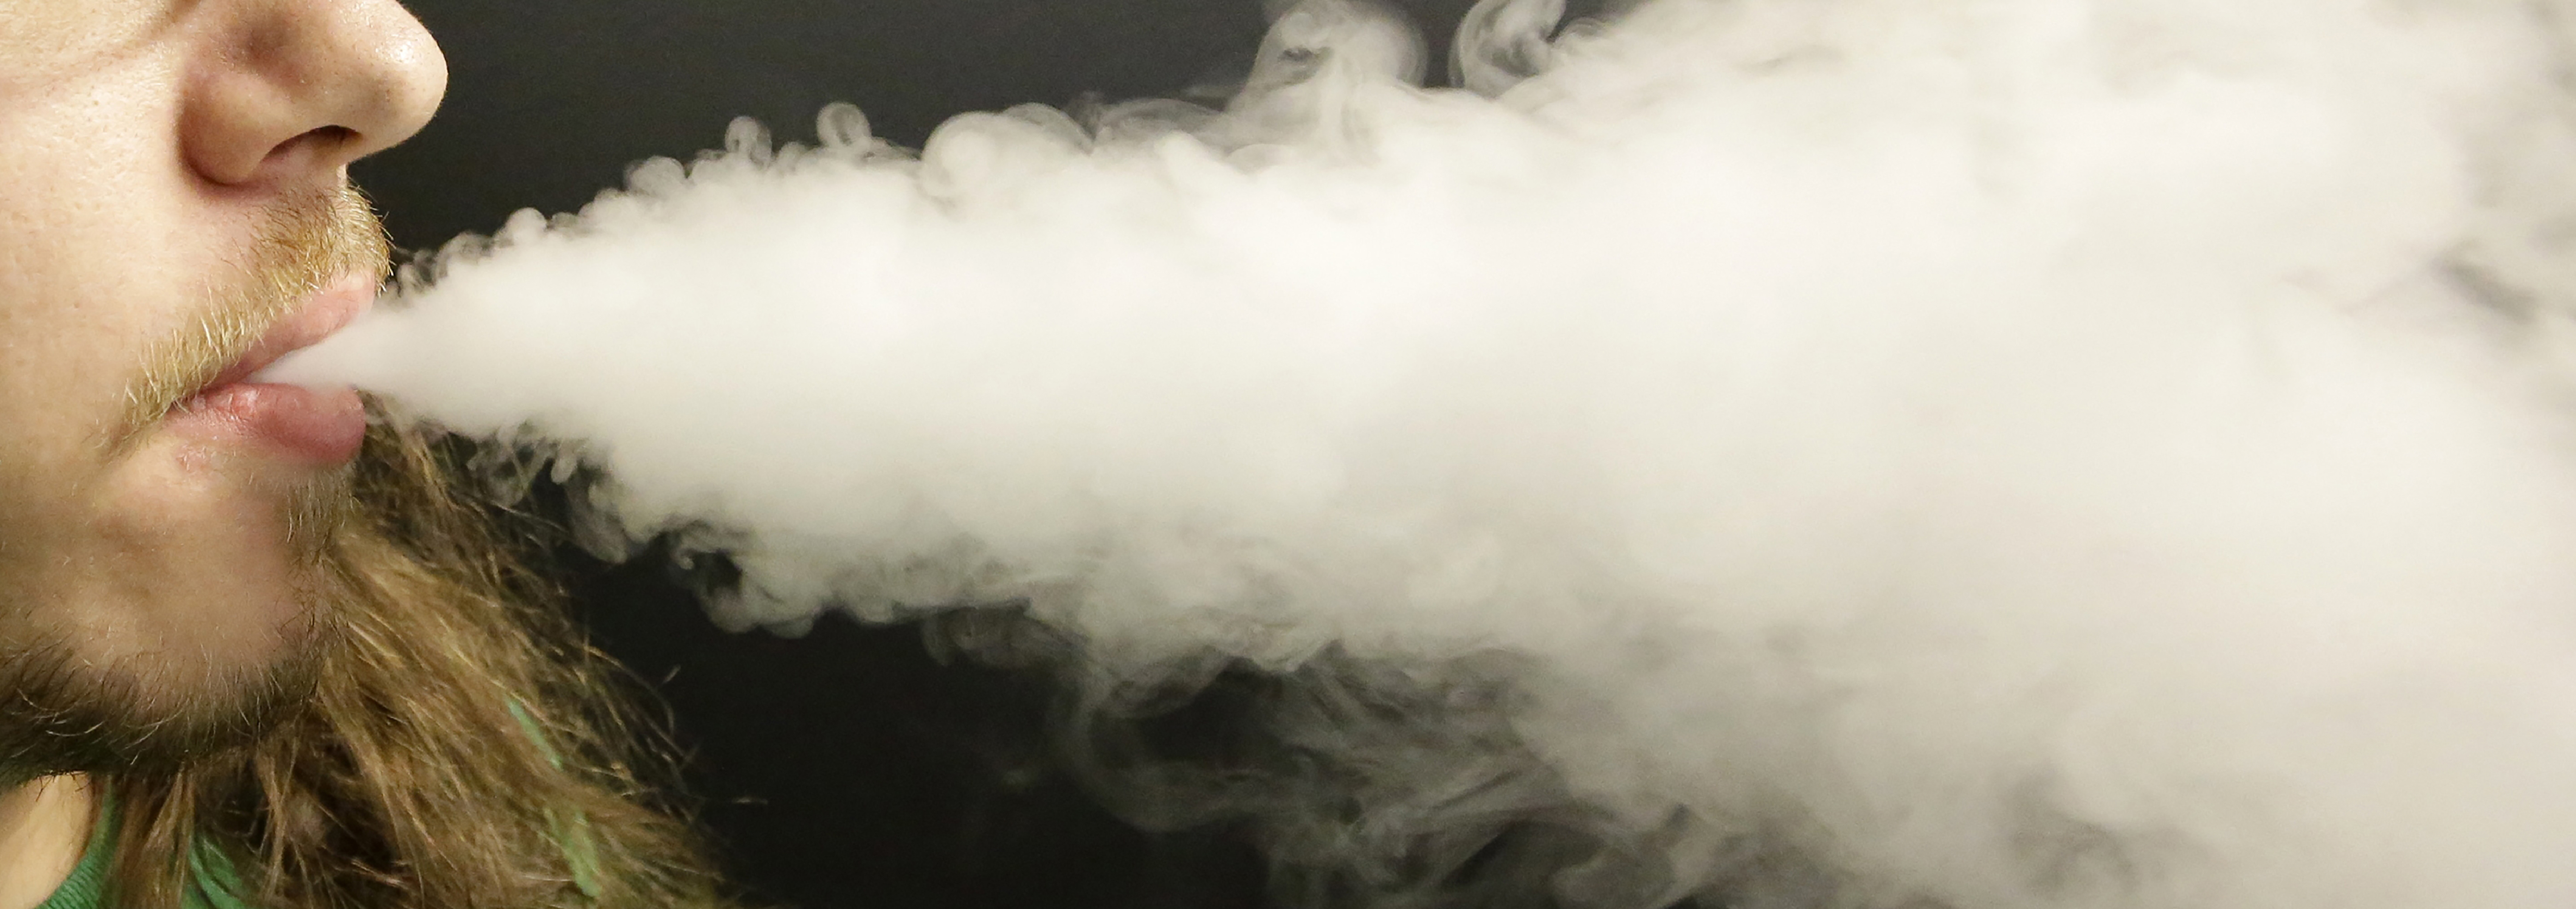 Health experts: There are 2 very different vaping epidemics that require 2 different solutions